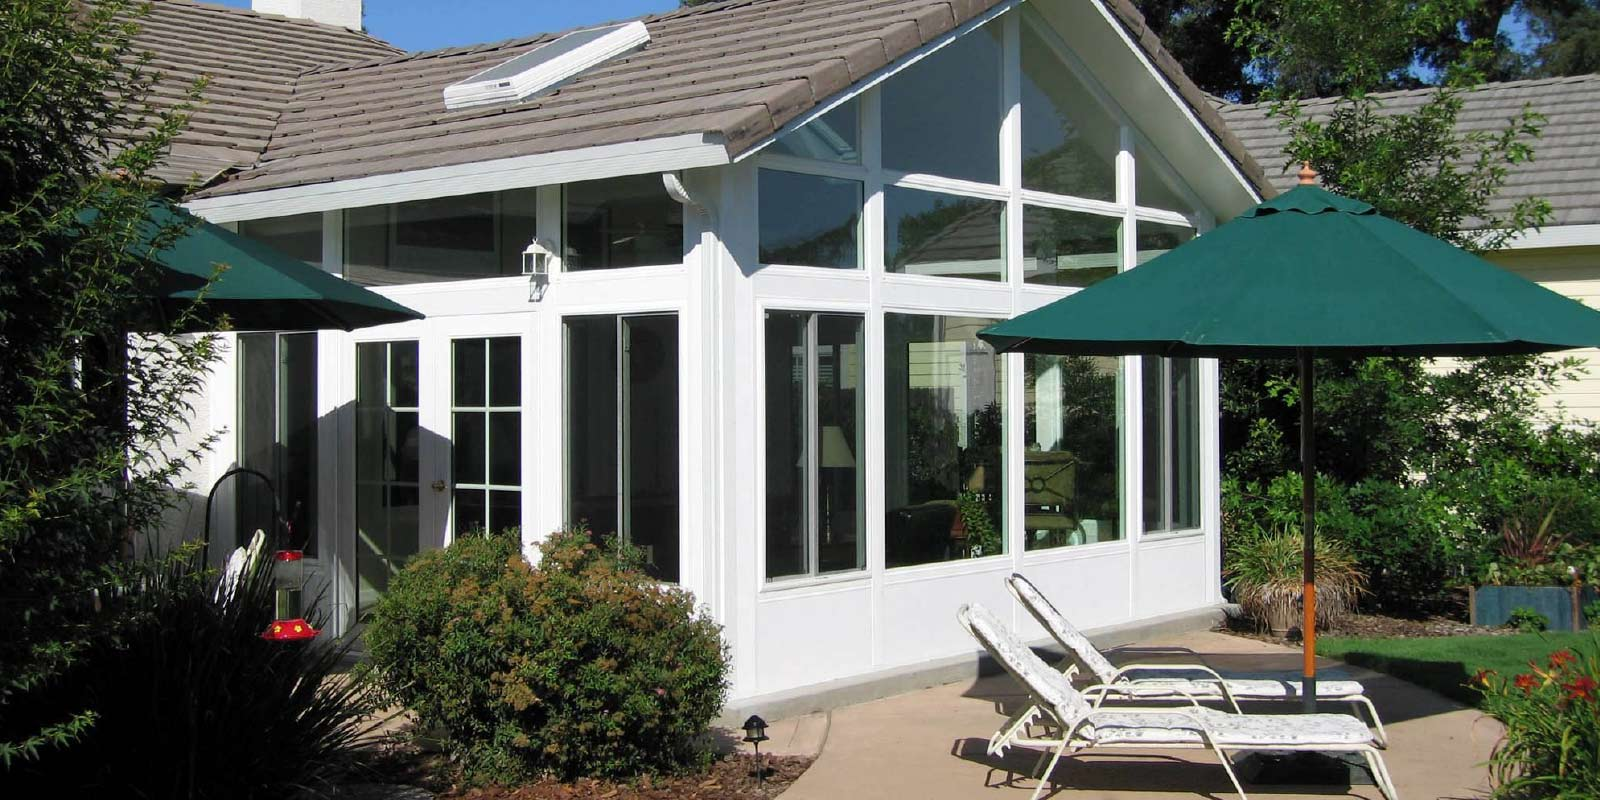 Sunroom conservatory all season room c thru sunrooms sunroom photo solutioingenieria Image collections